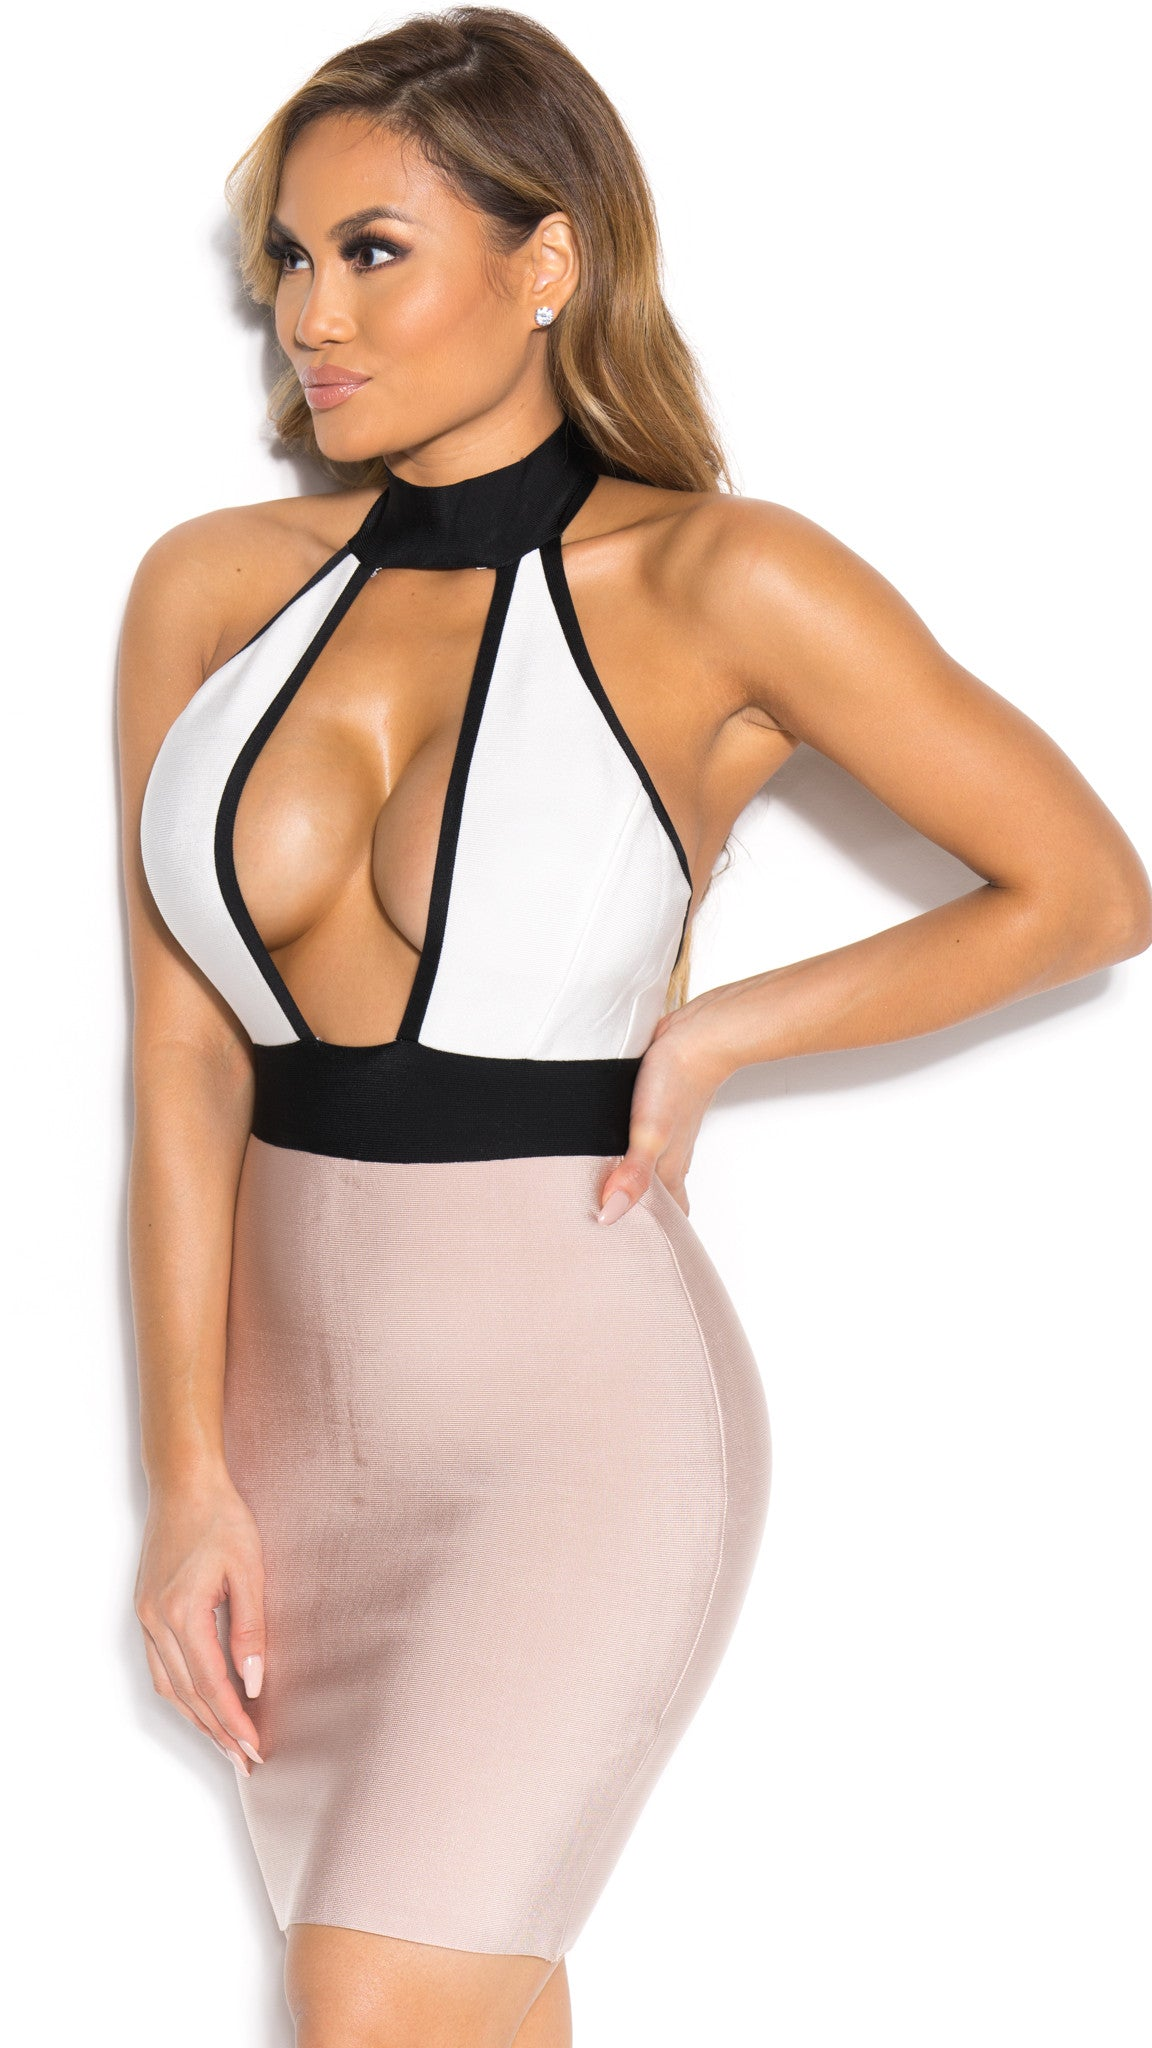 KENDALL BANDAGE DRESS IN NUDE WITH WHITE/BLACK